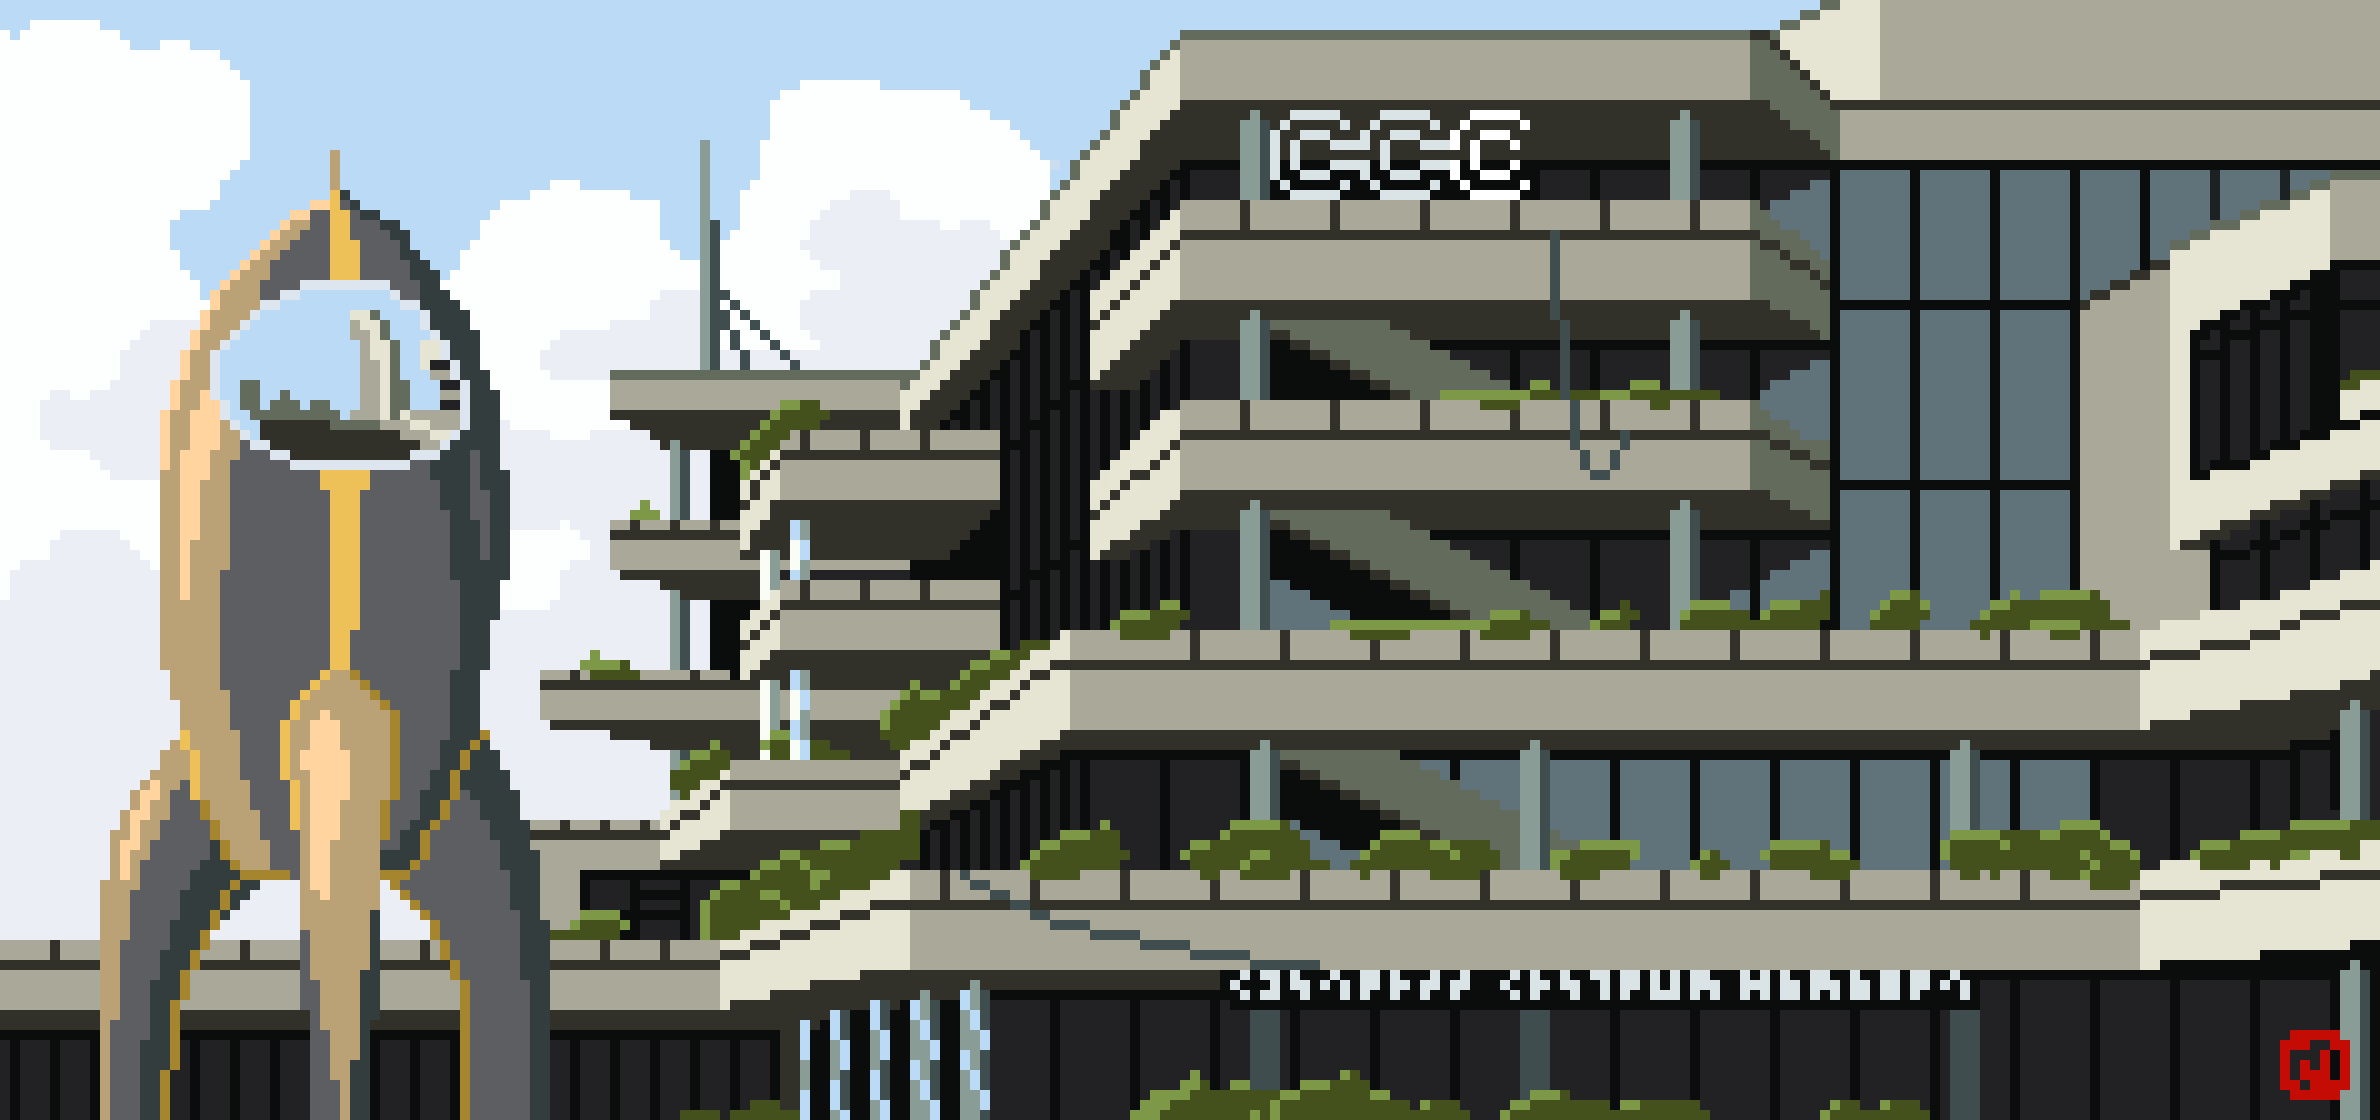 Pixel Art of the CCH